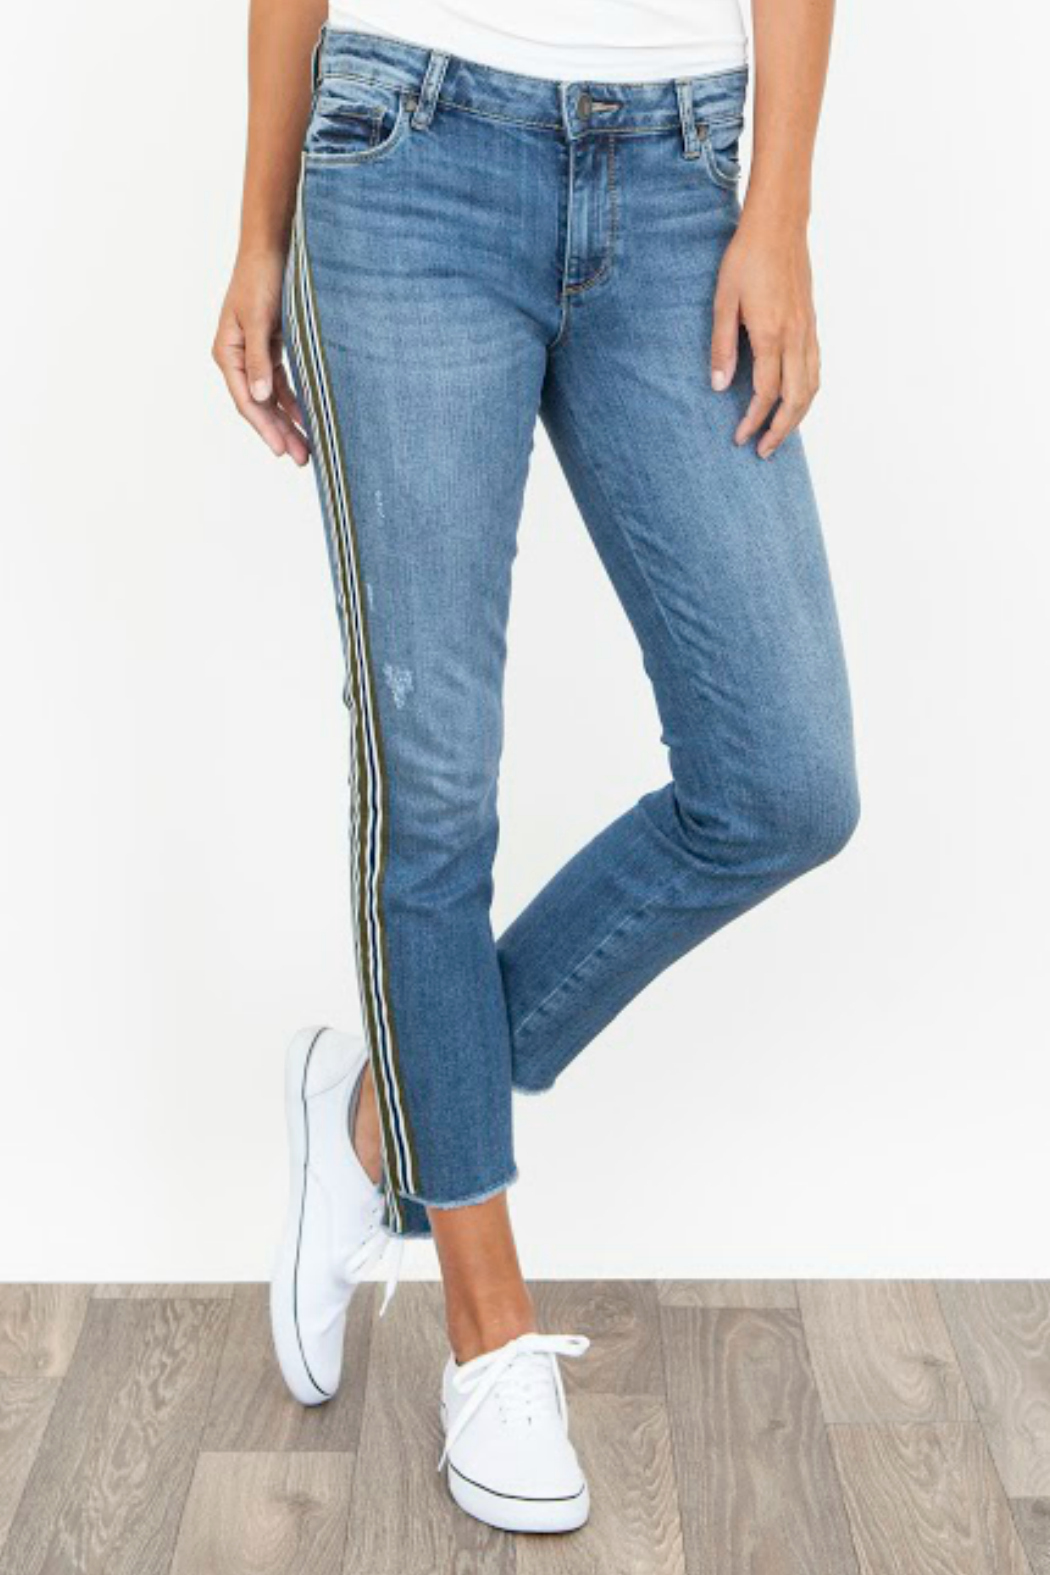 68c41a8006d0b Kut from the Kloth Reese Varsity Stripe Jean from New Jersey by ...